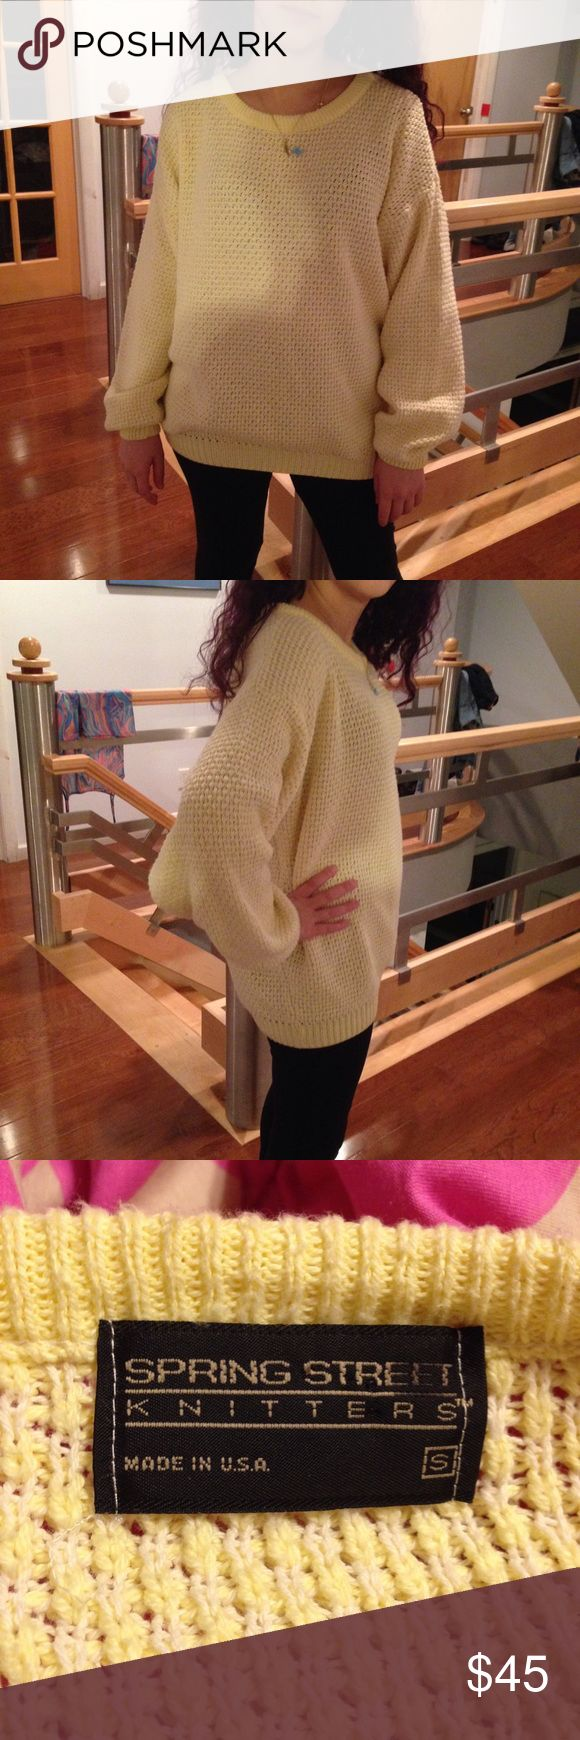 Vintage pastel yellow oversized grandpa sweater Super soft and comfortable oversized vintage grandpa sweater. Lovely pastel yellow, perfect for spring. Really similar to the American apparel fisherman pullover jumper! Honestly think this is softer and looser fitting though. Tag size S. I am a size S/M for reference. Can probably fit up to a L. American Apparel Sweaters Crew & Scoop Necks